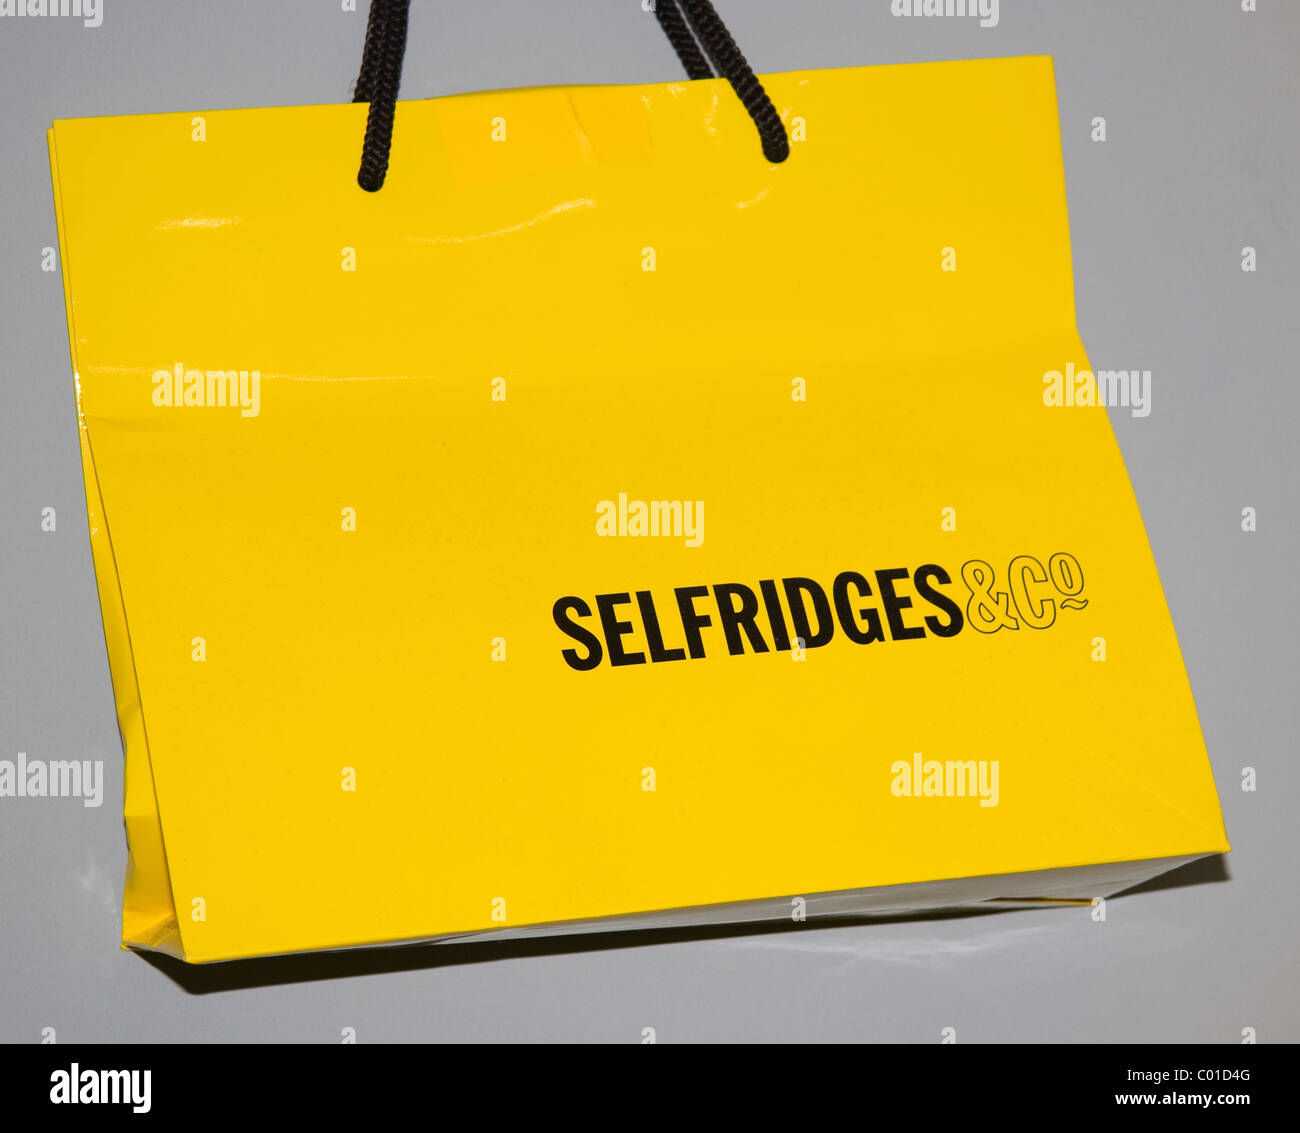 Selfridges Bag Stock Photos & Selfridges Bag Stock Images - Alamy